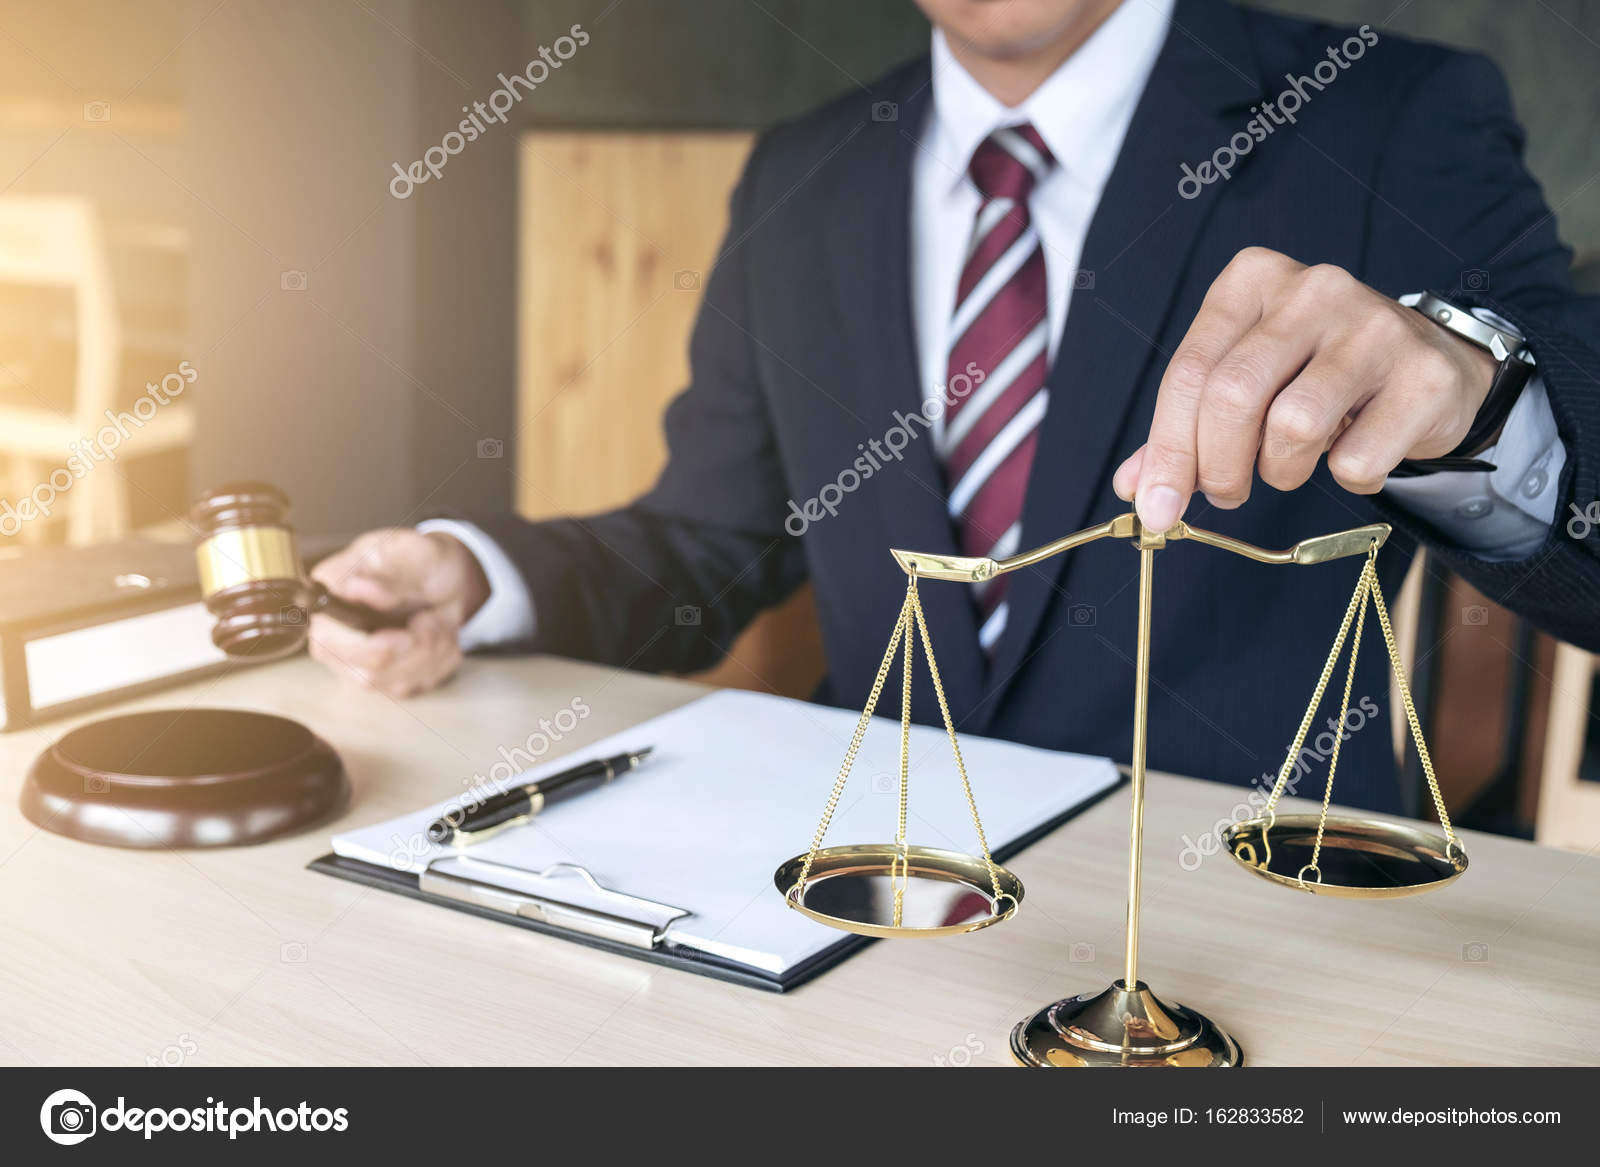 Male lawyer working with gavel and scales of justice, note paper — Stock Photo © freedomtumz #162833582